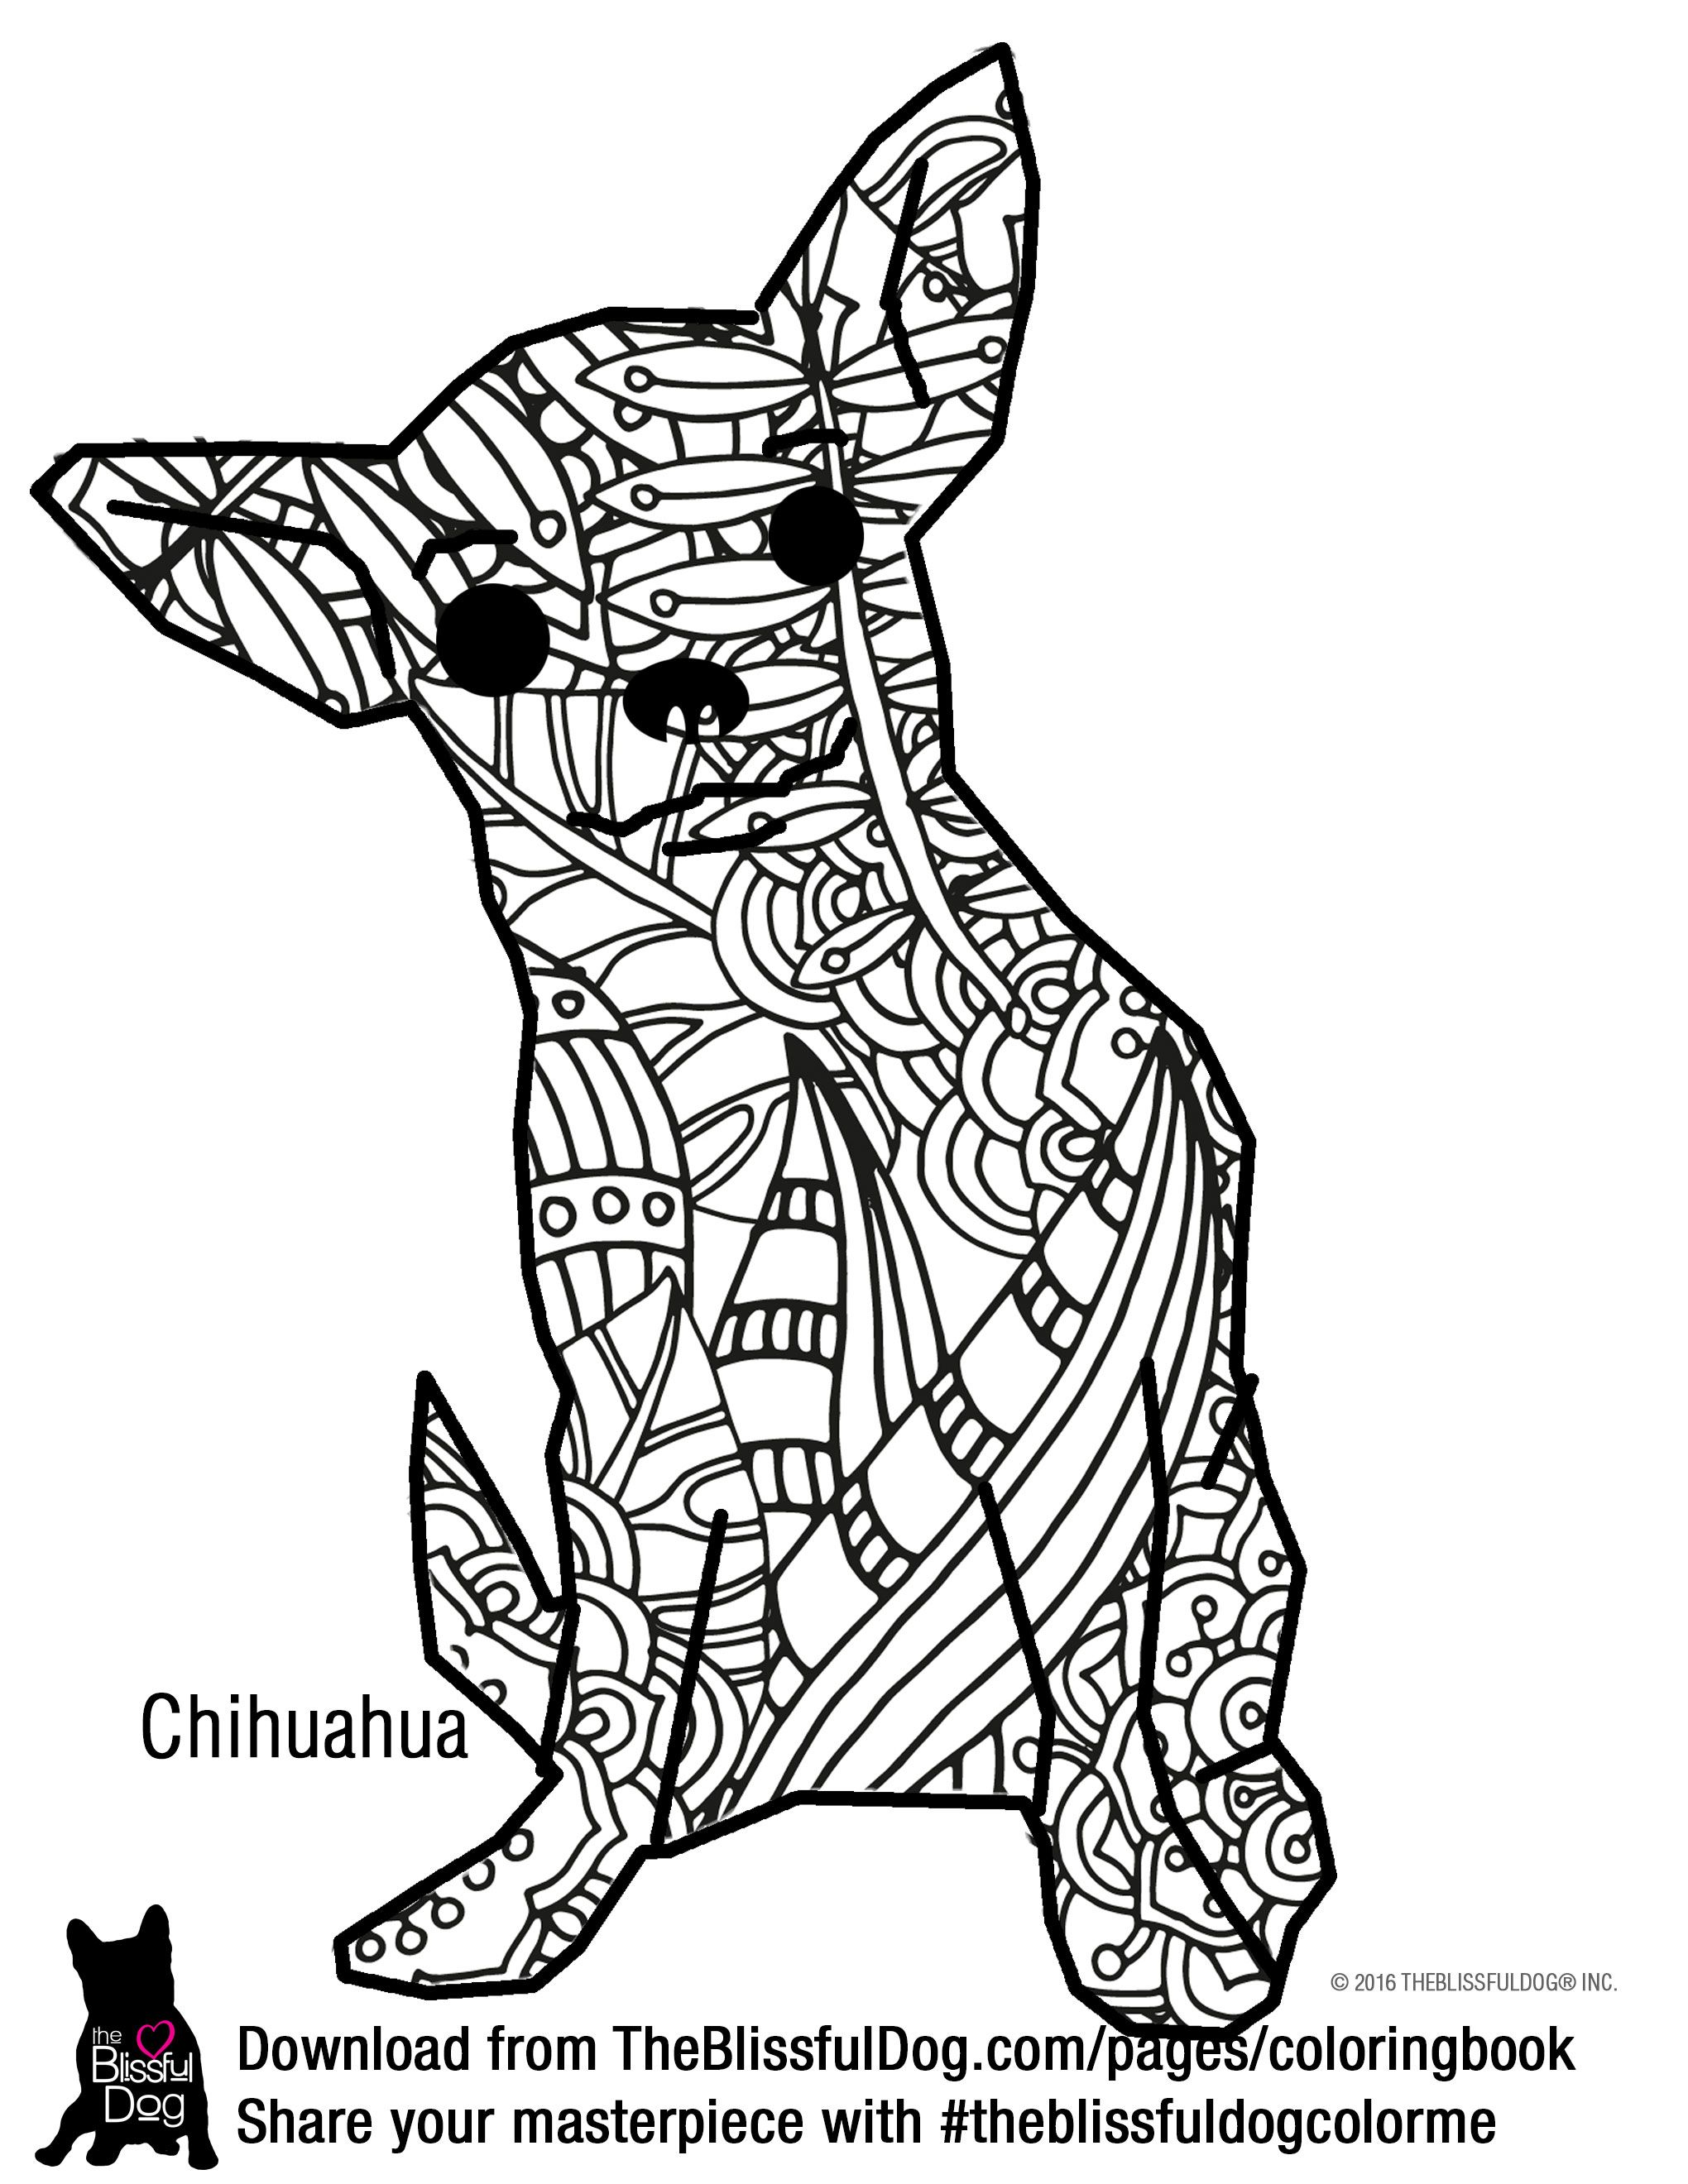 Coloring Book Horse Coloring Pages Puppy Coloring Pages Dog